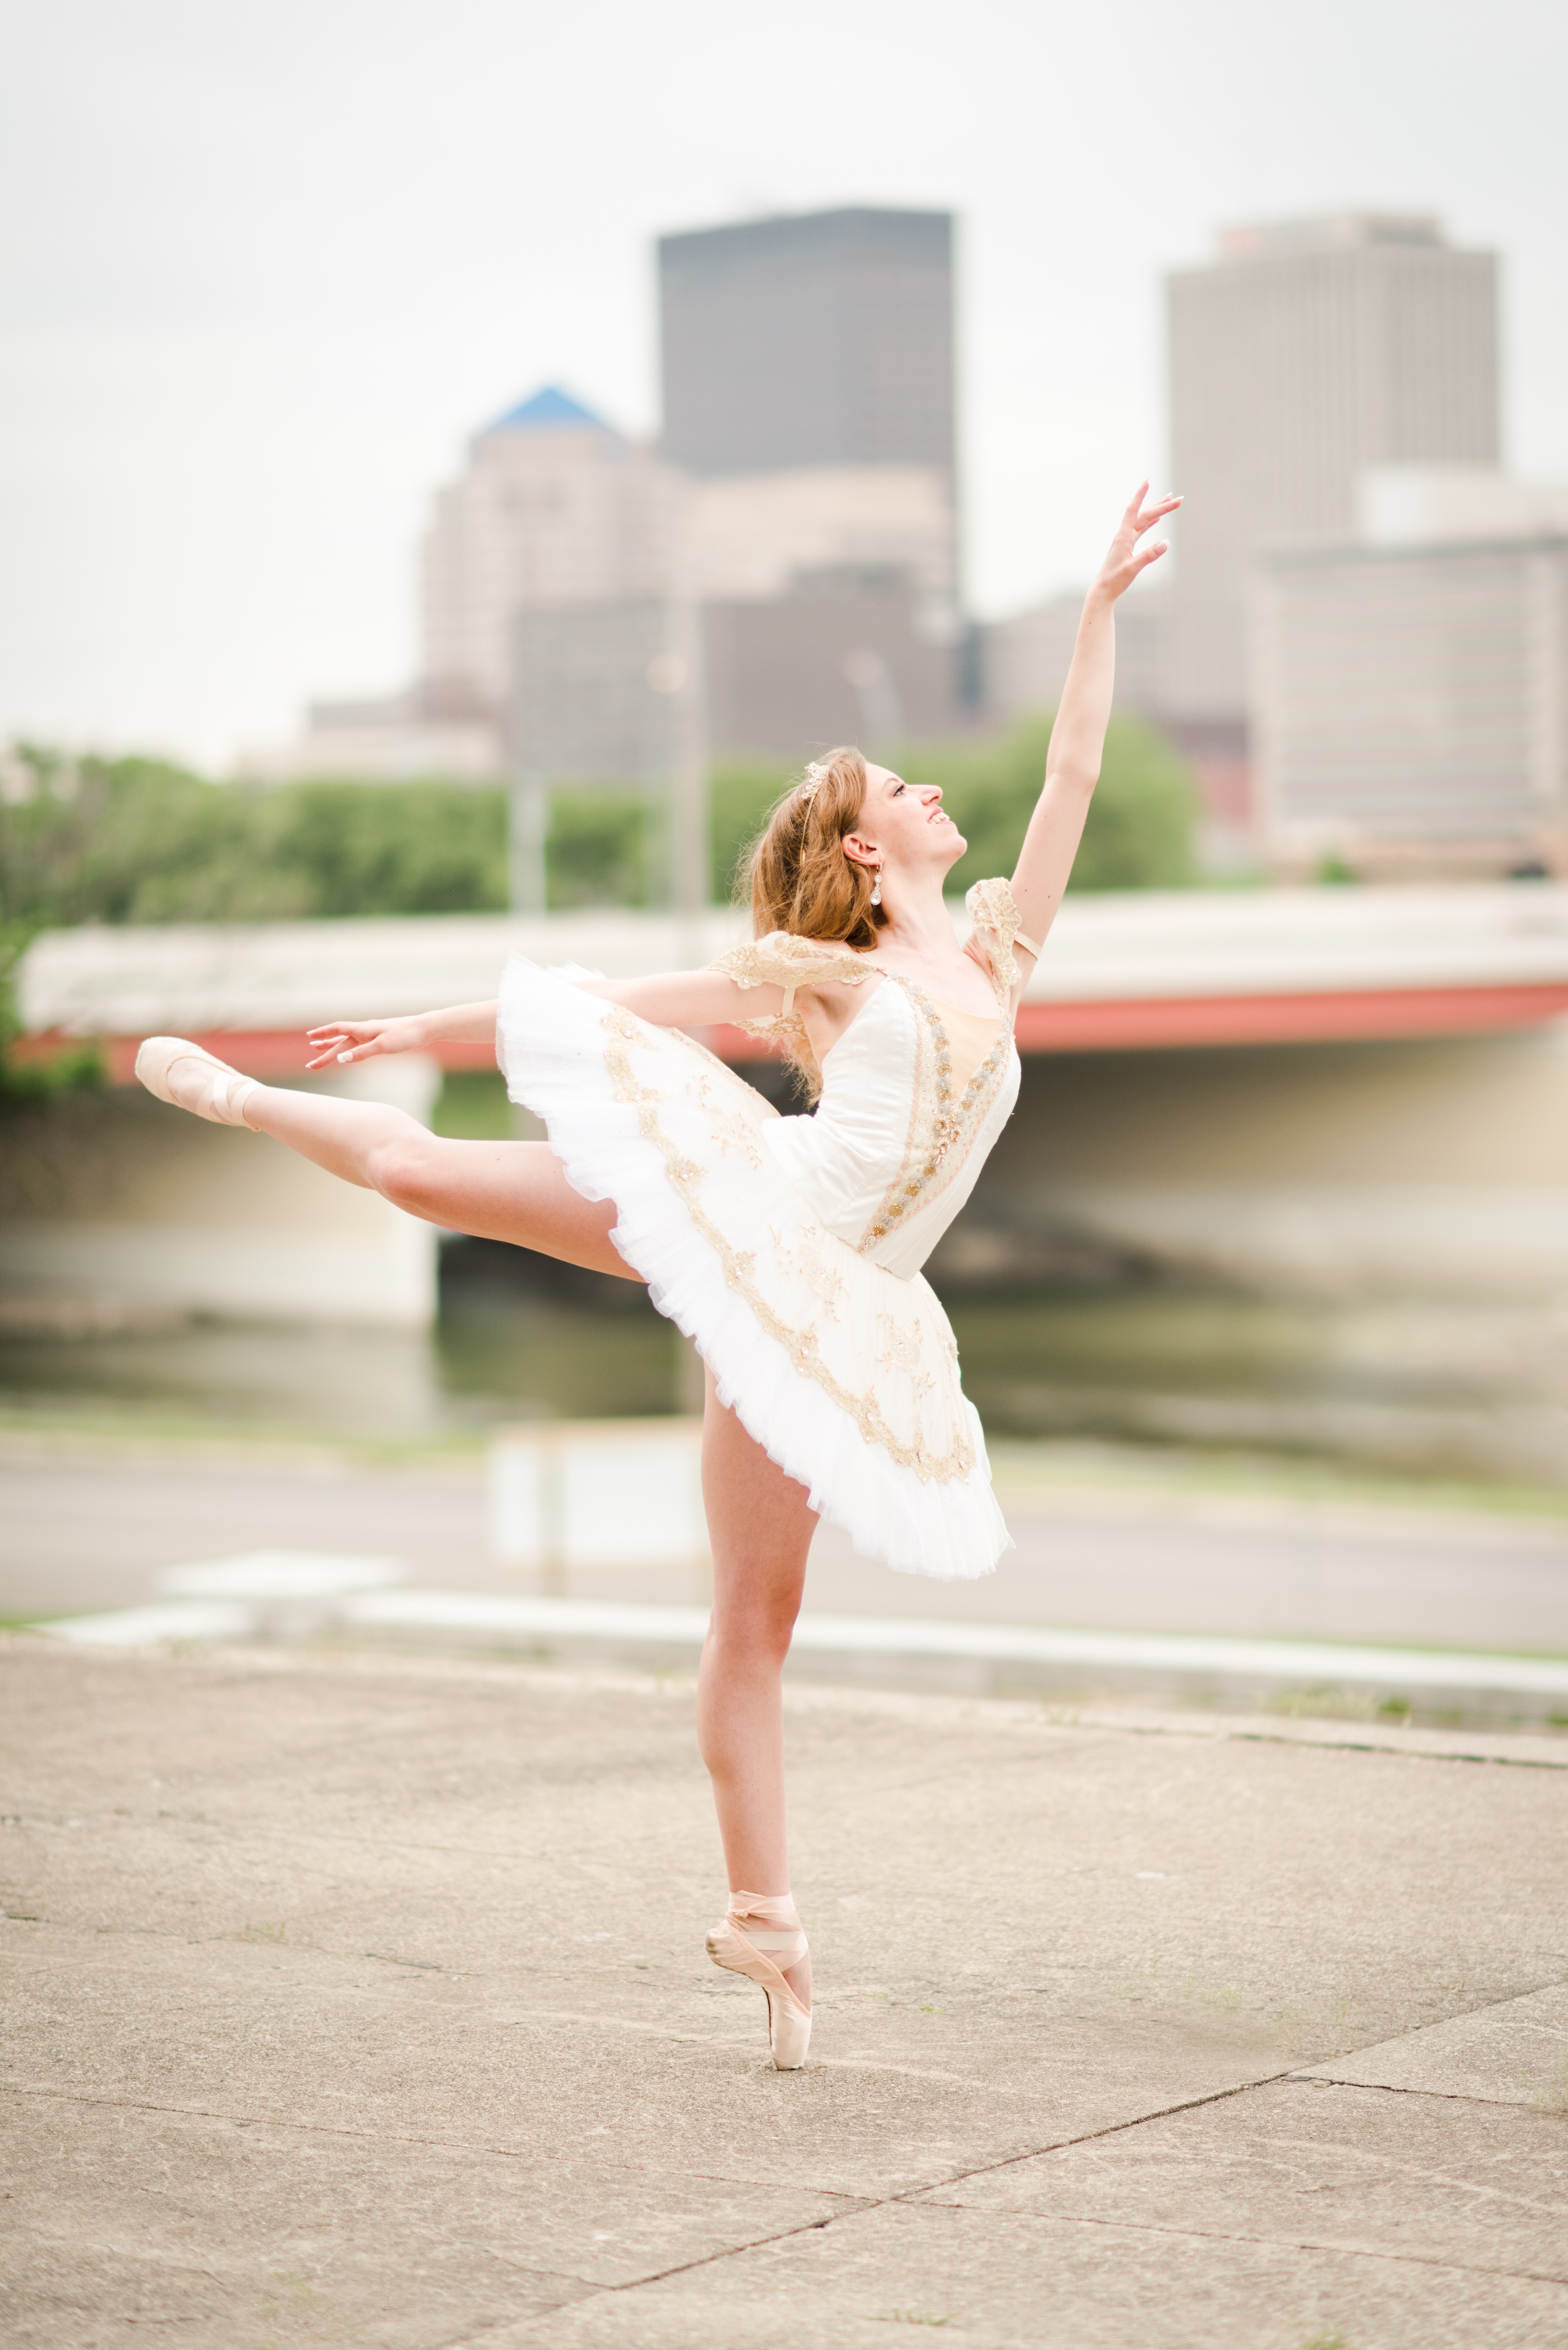 immerse-photography-dance-portraits-6.jpg